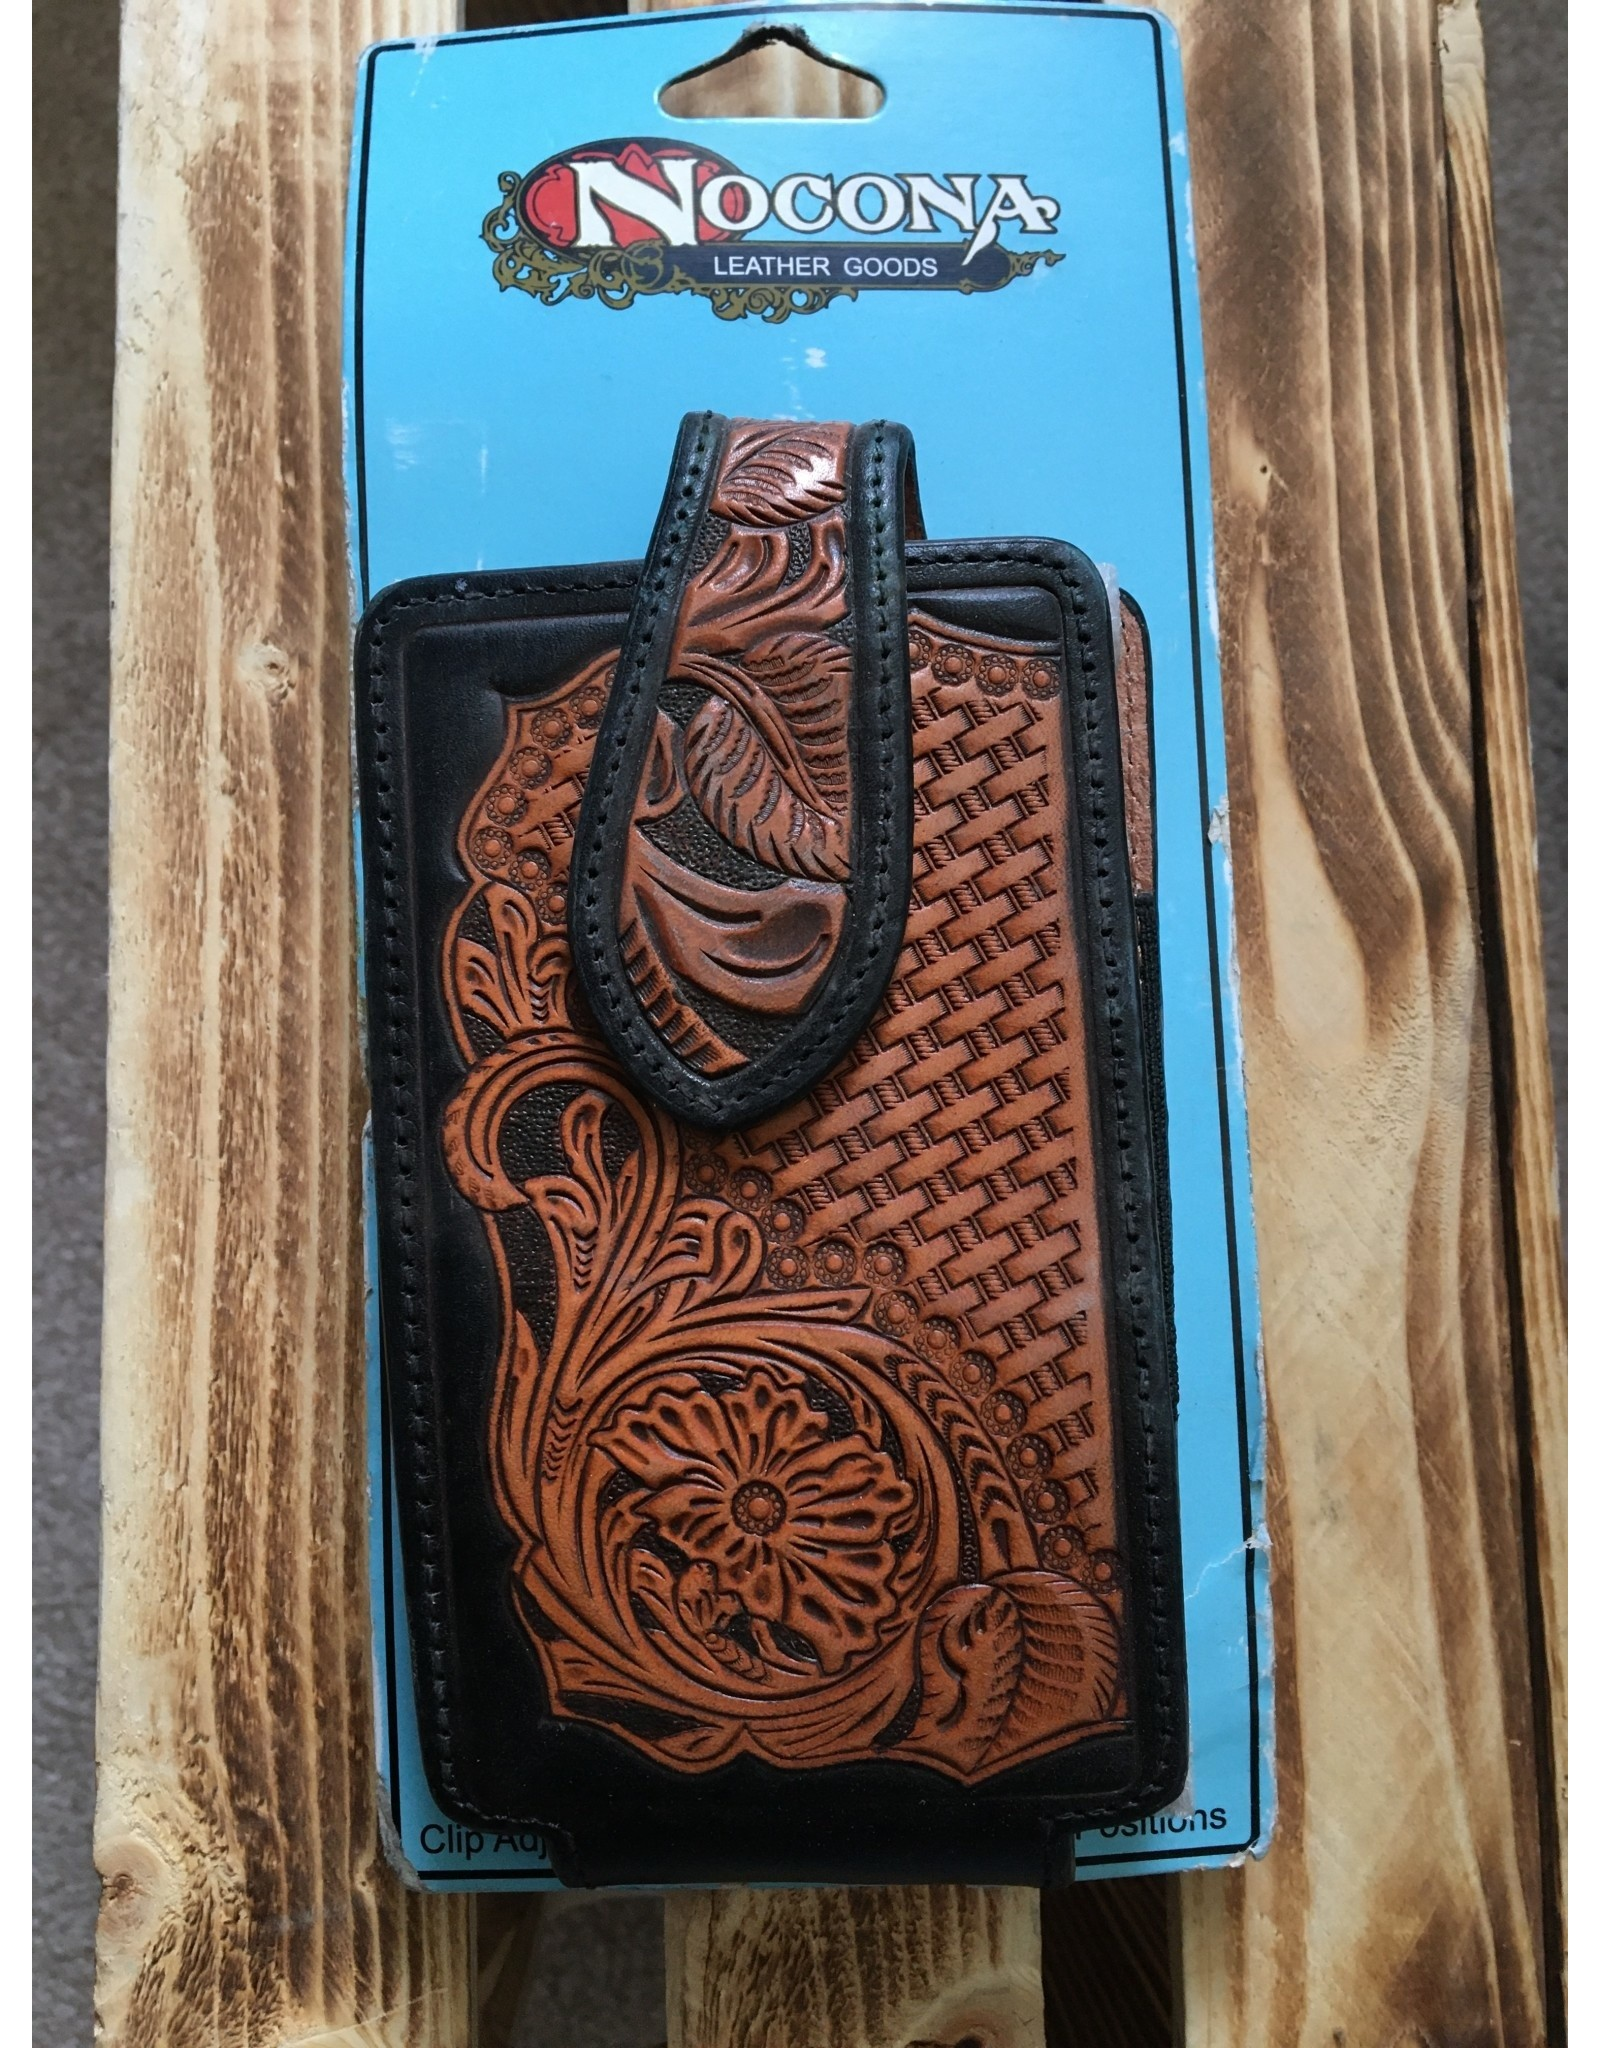 NOCONA TAN LEATHER FLORAL AND BASKET TOOLED CELL PHONE CASE